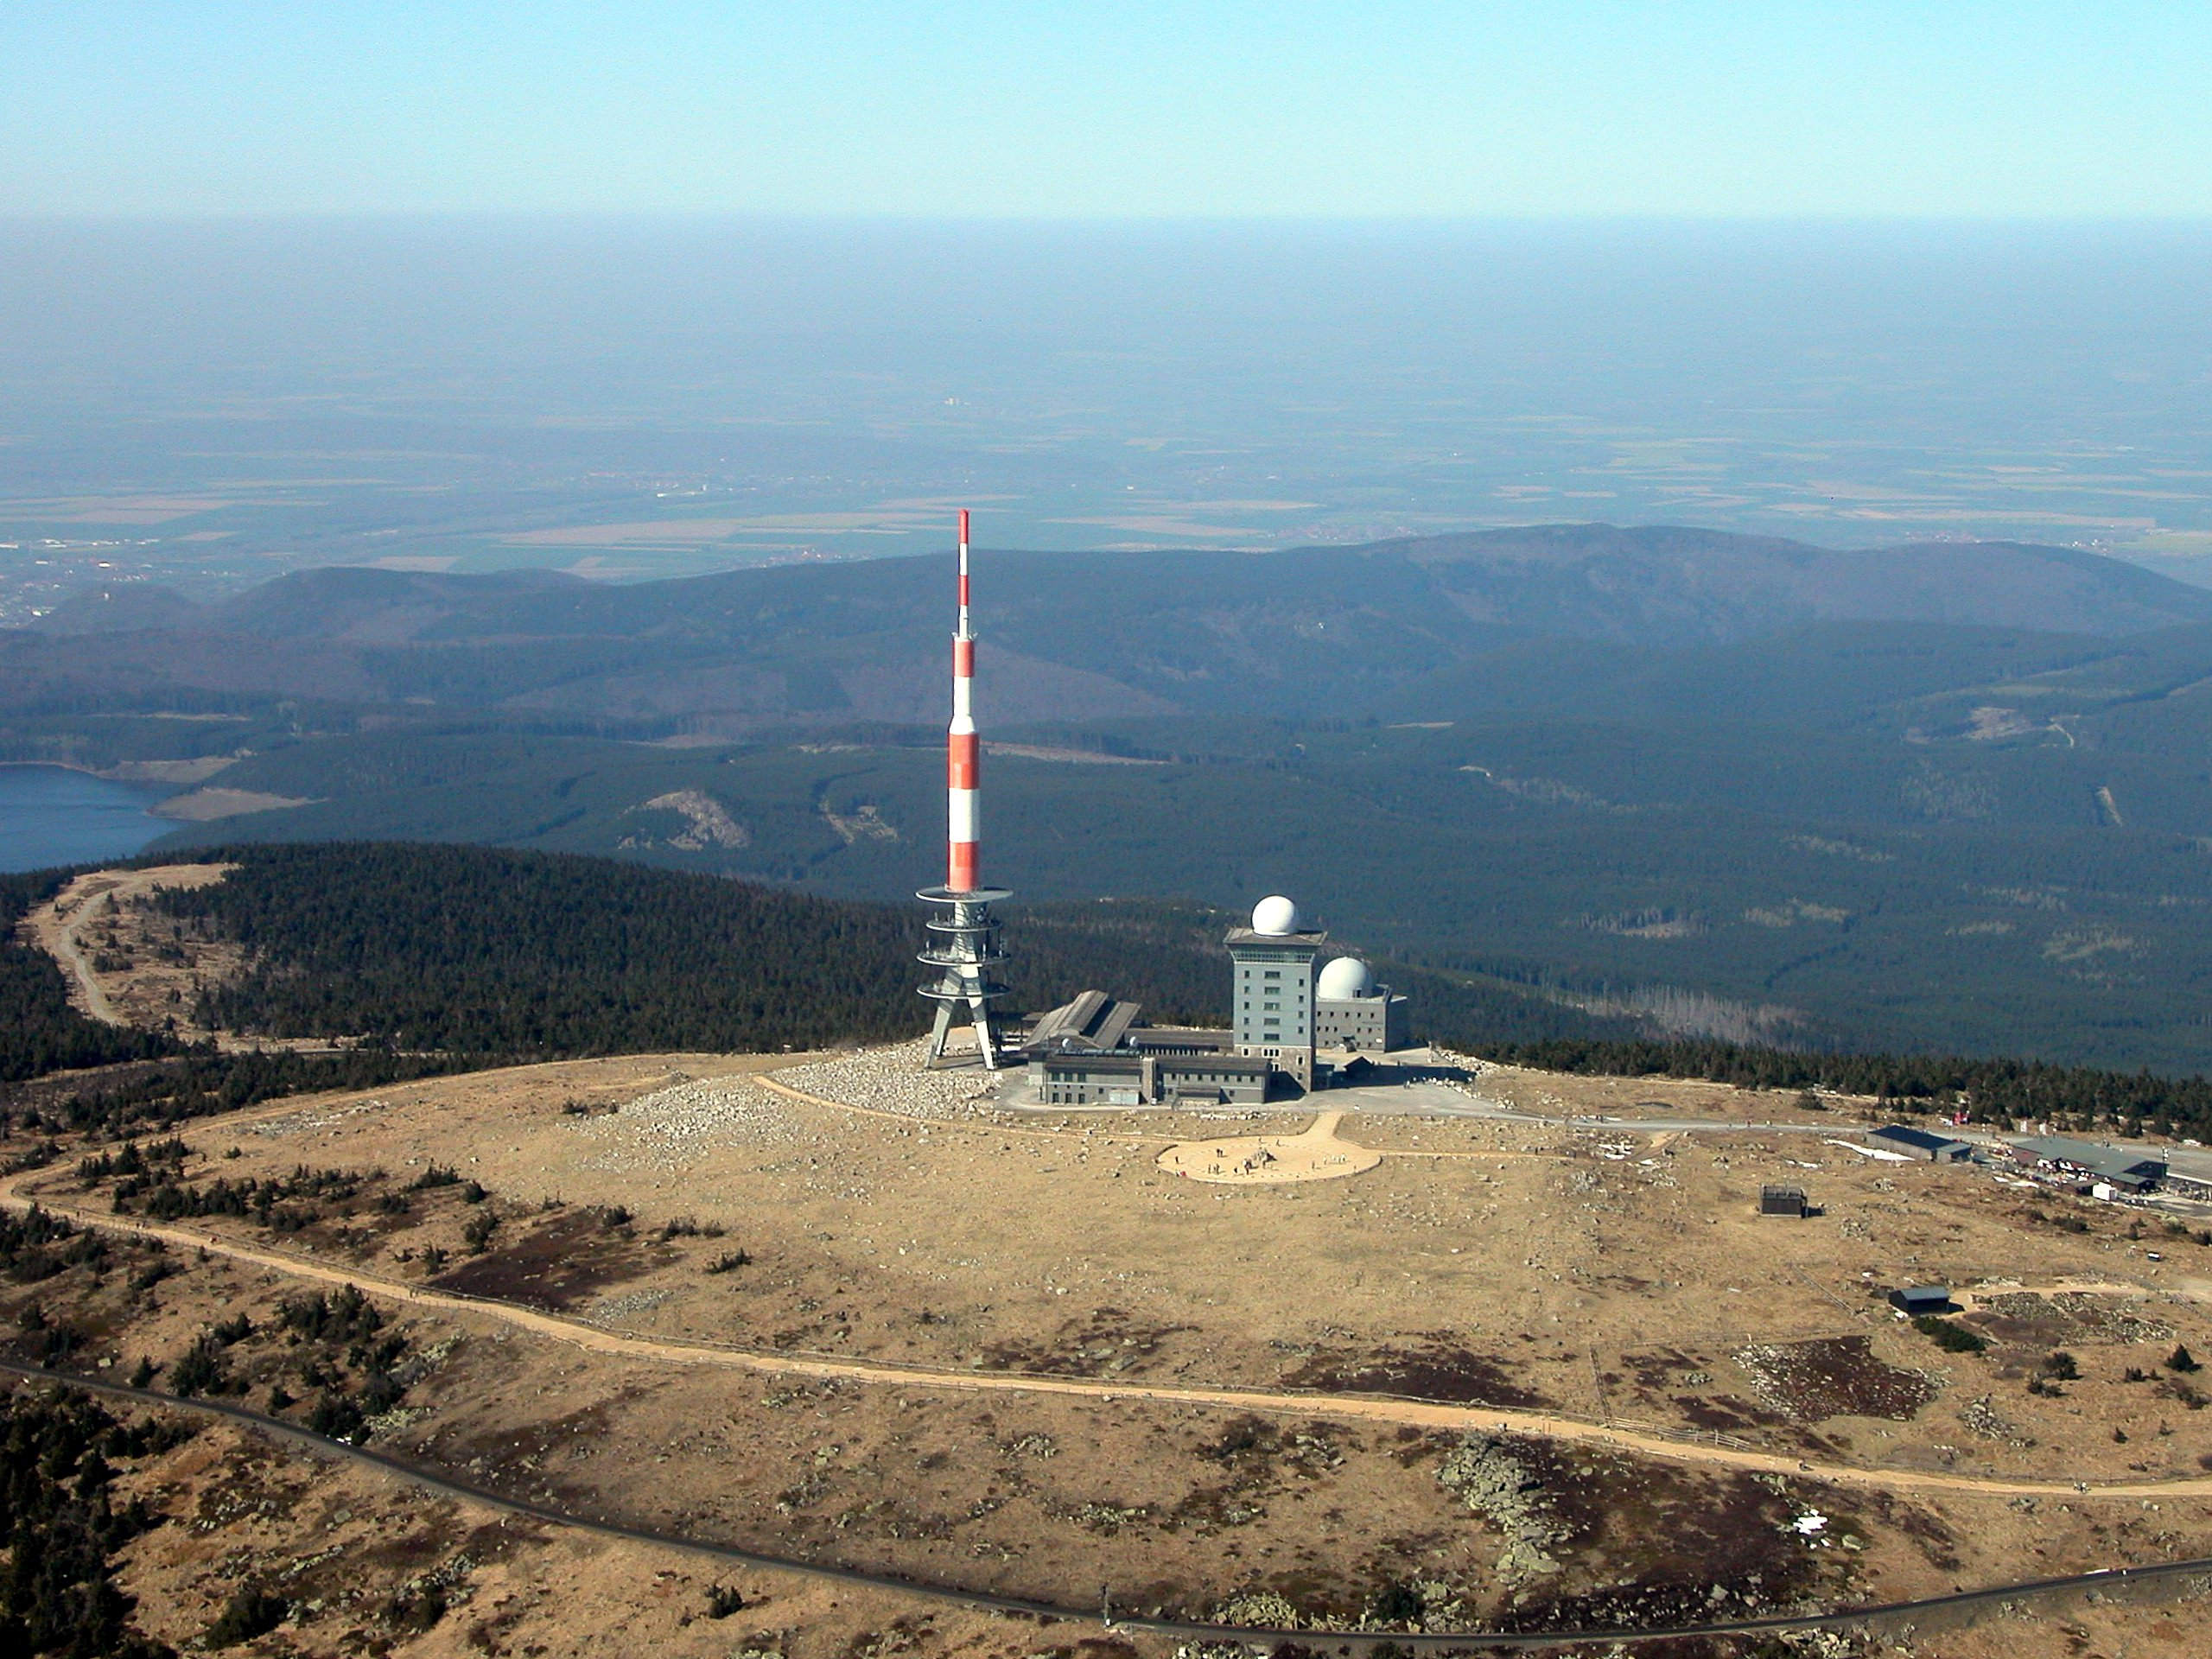 http://upload.wikimedia.org/wikipedia/commons/8/89/Brocken_Luftbild_(2007).JPG